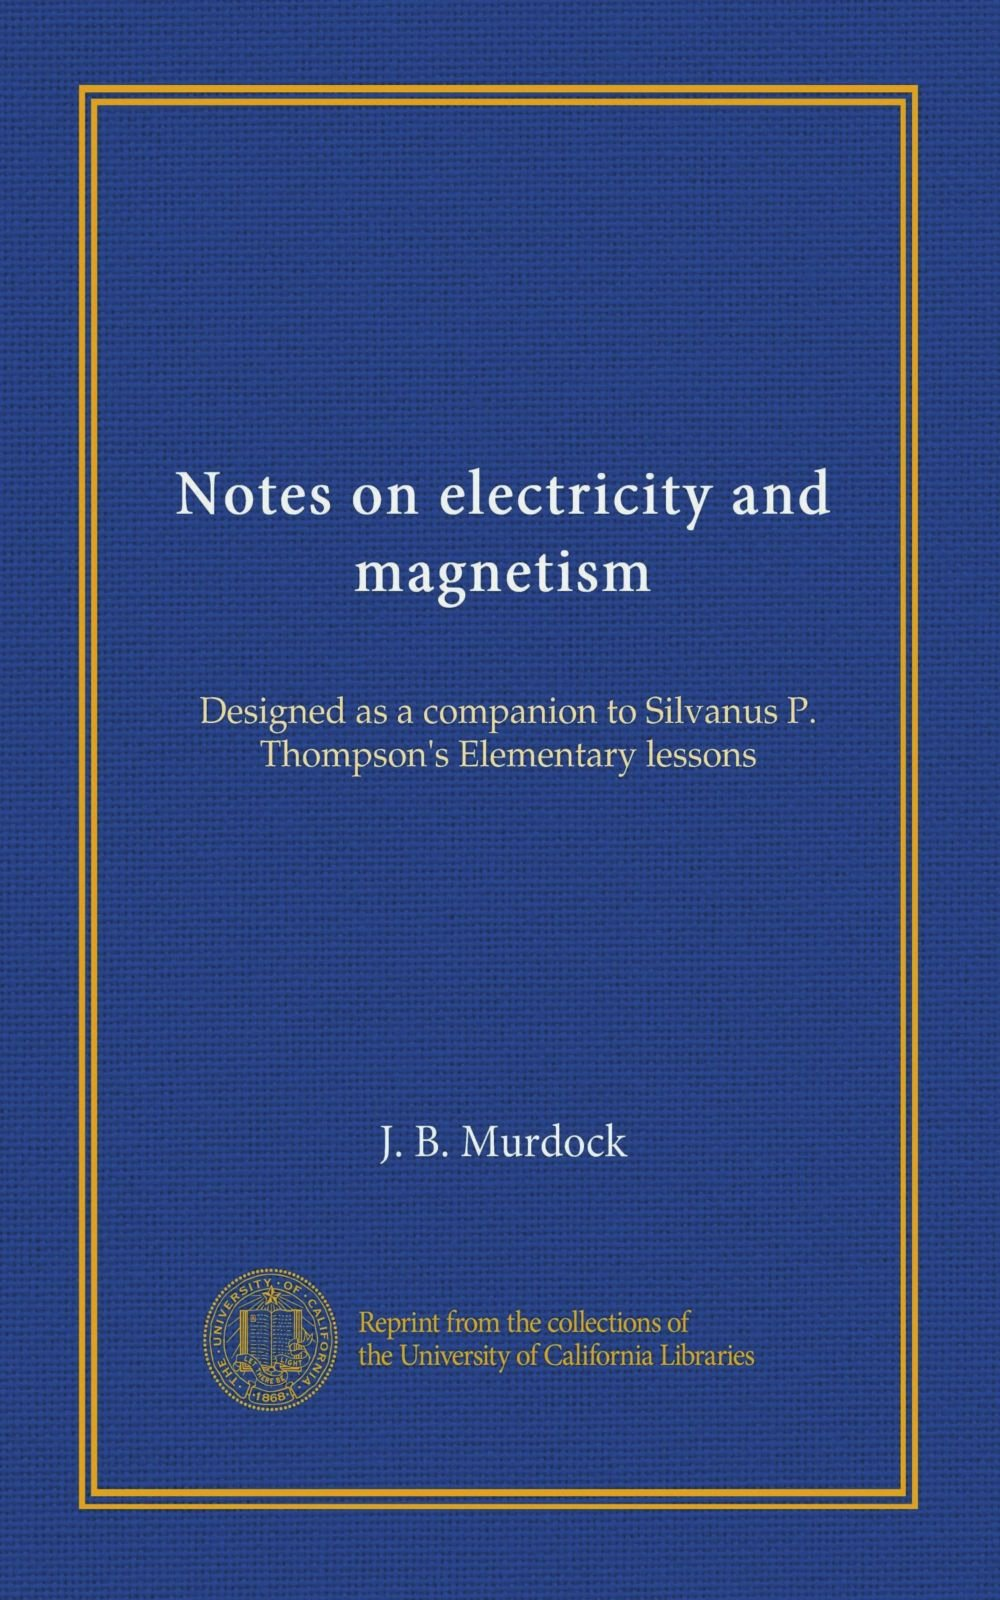 Notes on electricity and magnetism: Designed as a companion to Silvanus P. Thompson's Elementary lessons ebook